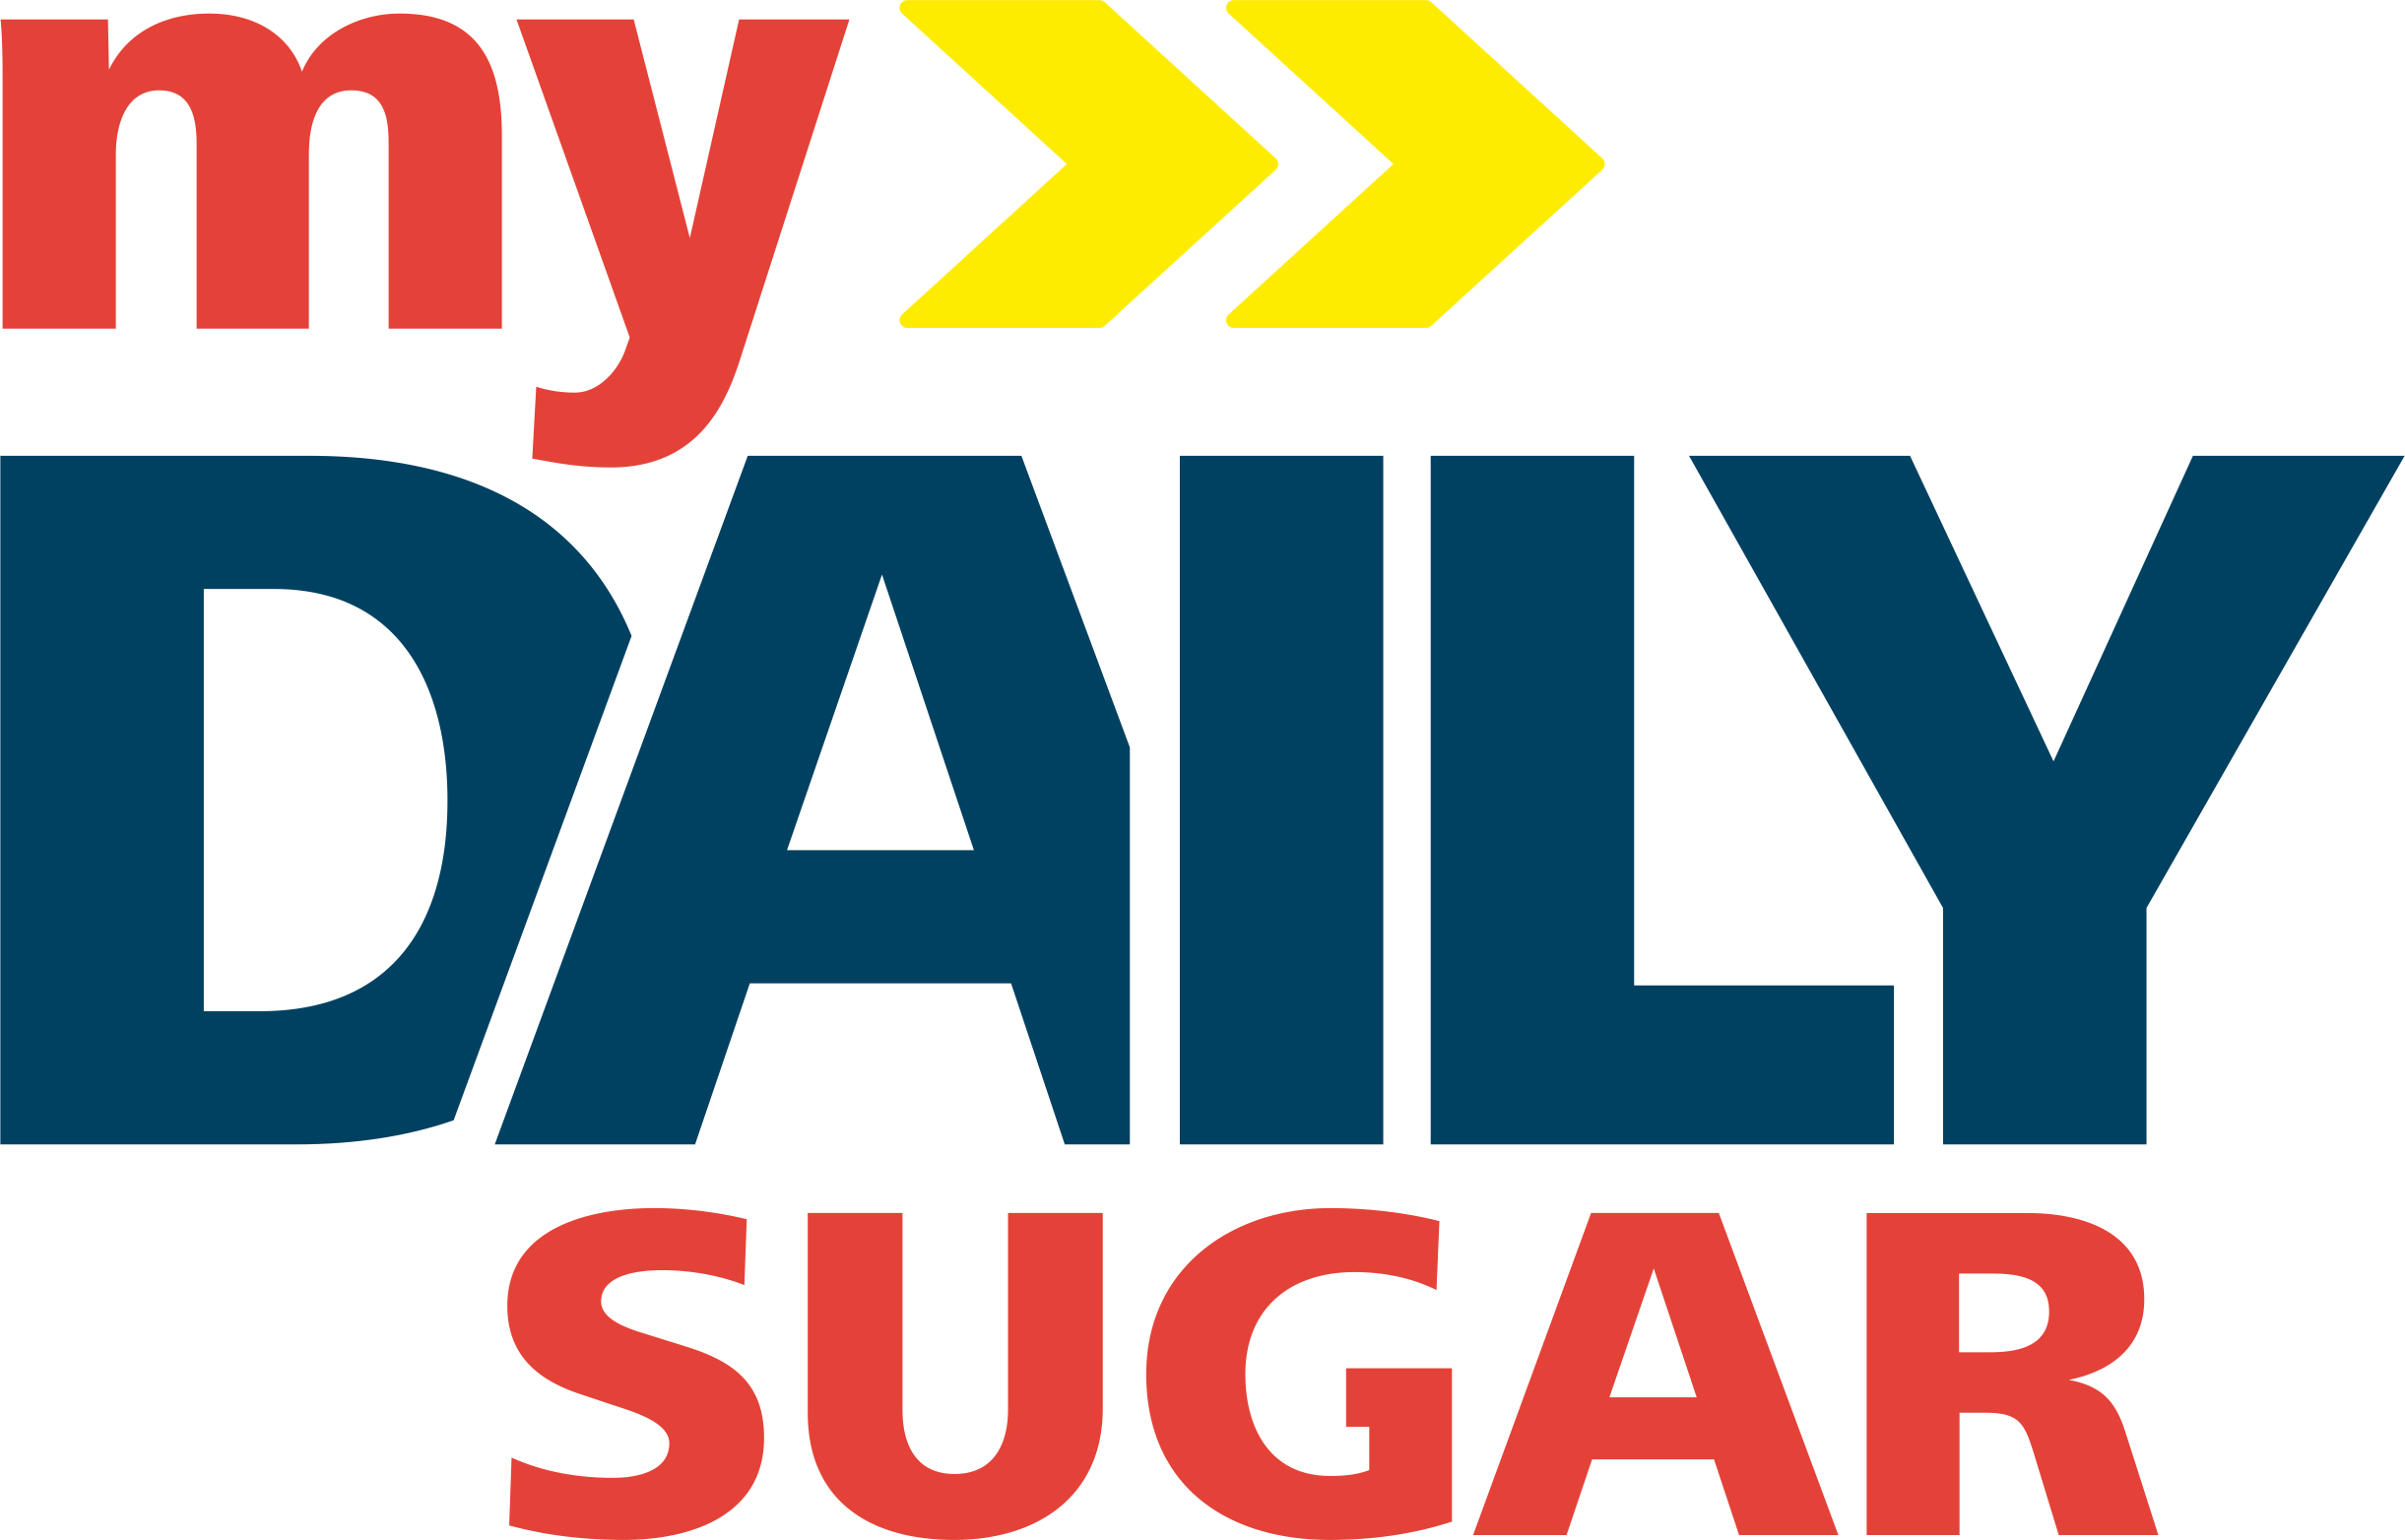 My Daily Sugar logo